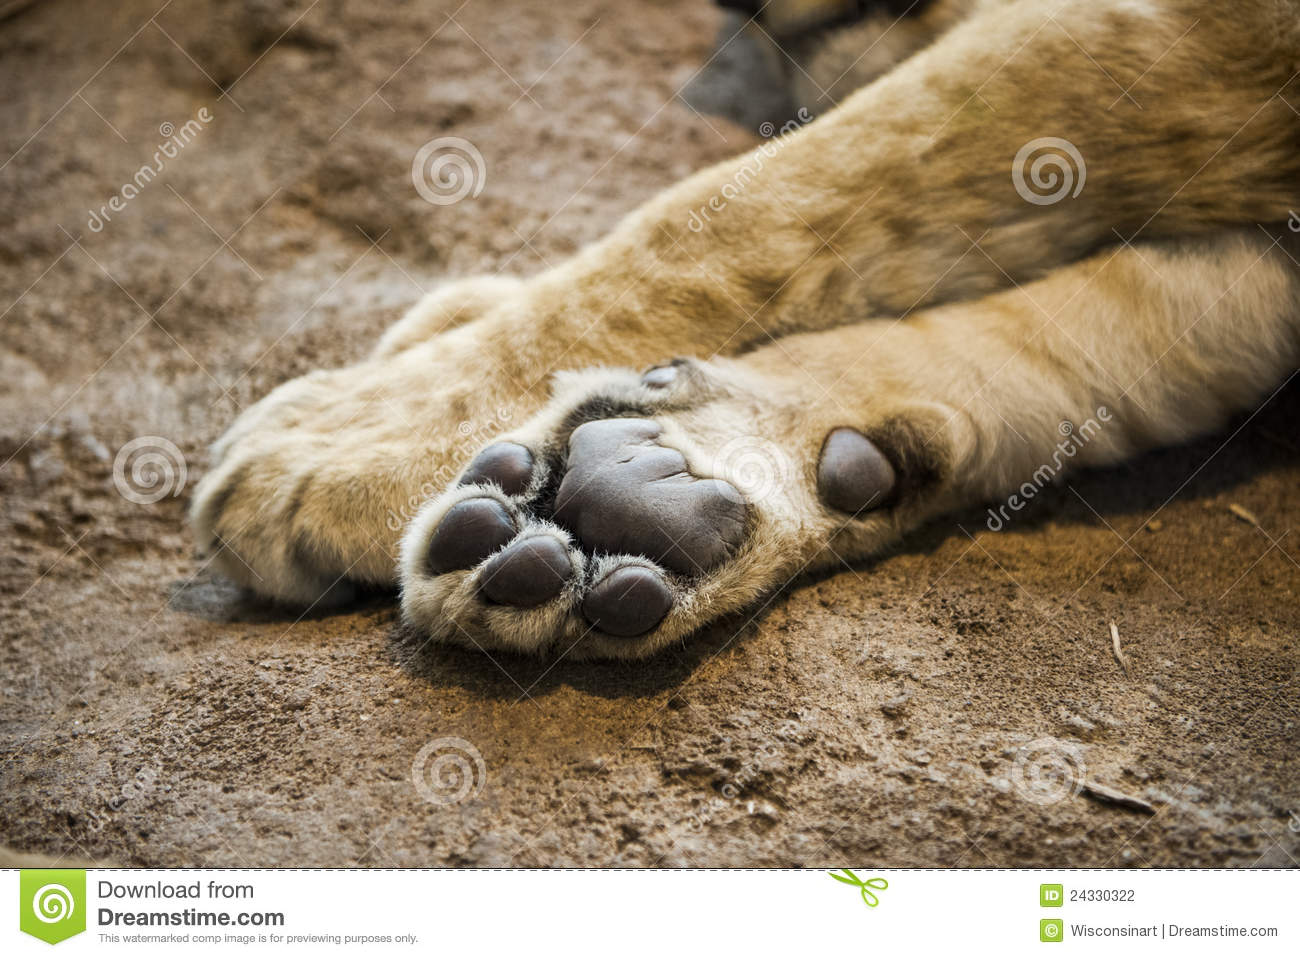 under the lions paw